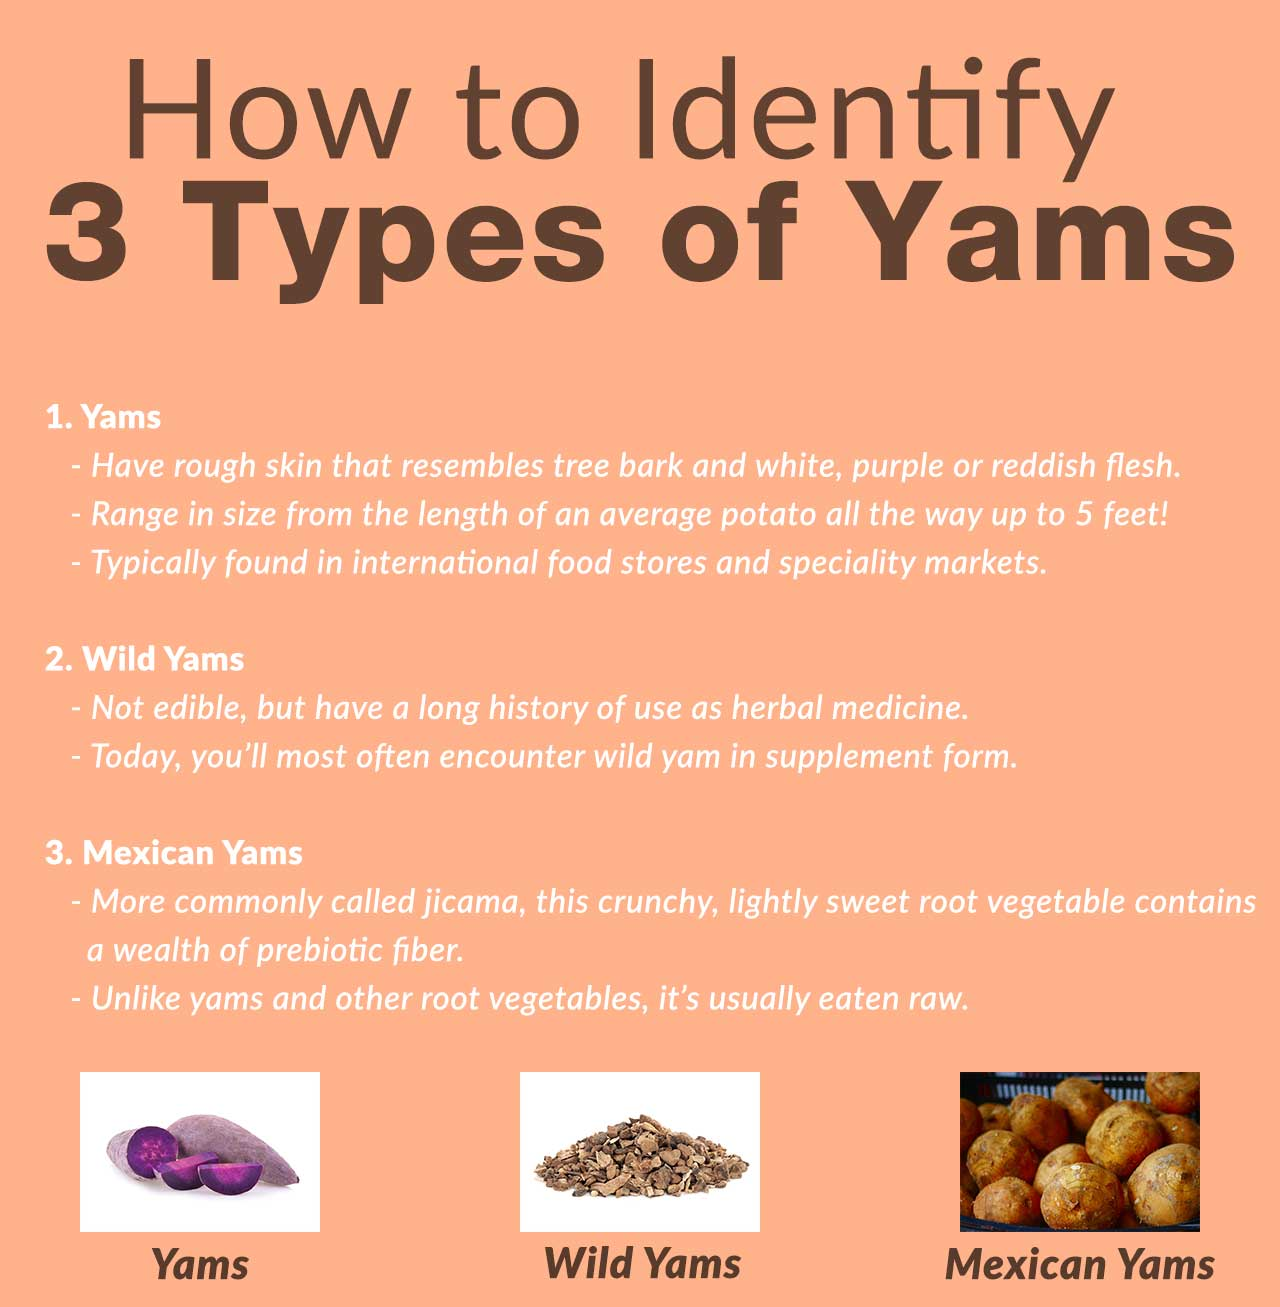 How to identify 3 types of yams